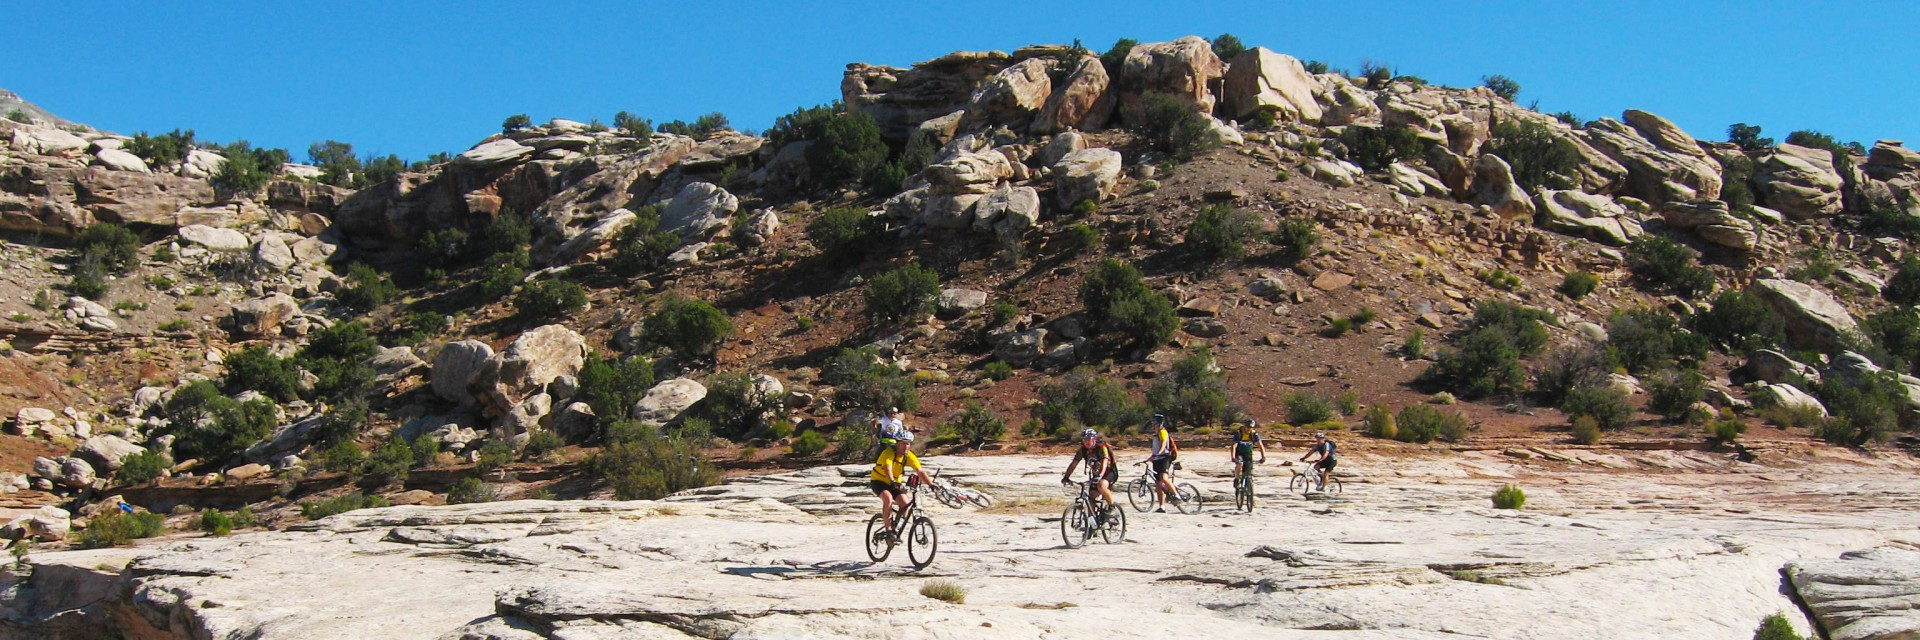 "Riders enjoy a little ""freeriding"" on a slickrock section of the Kokopelli Trail 5-day guided mountain bike tour"